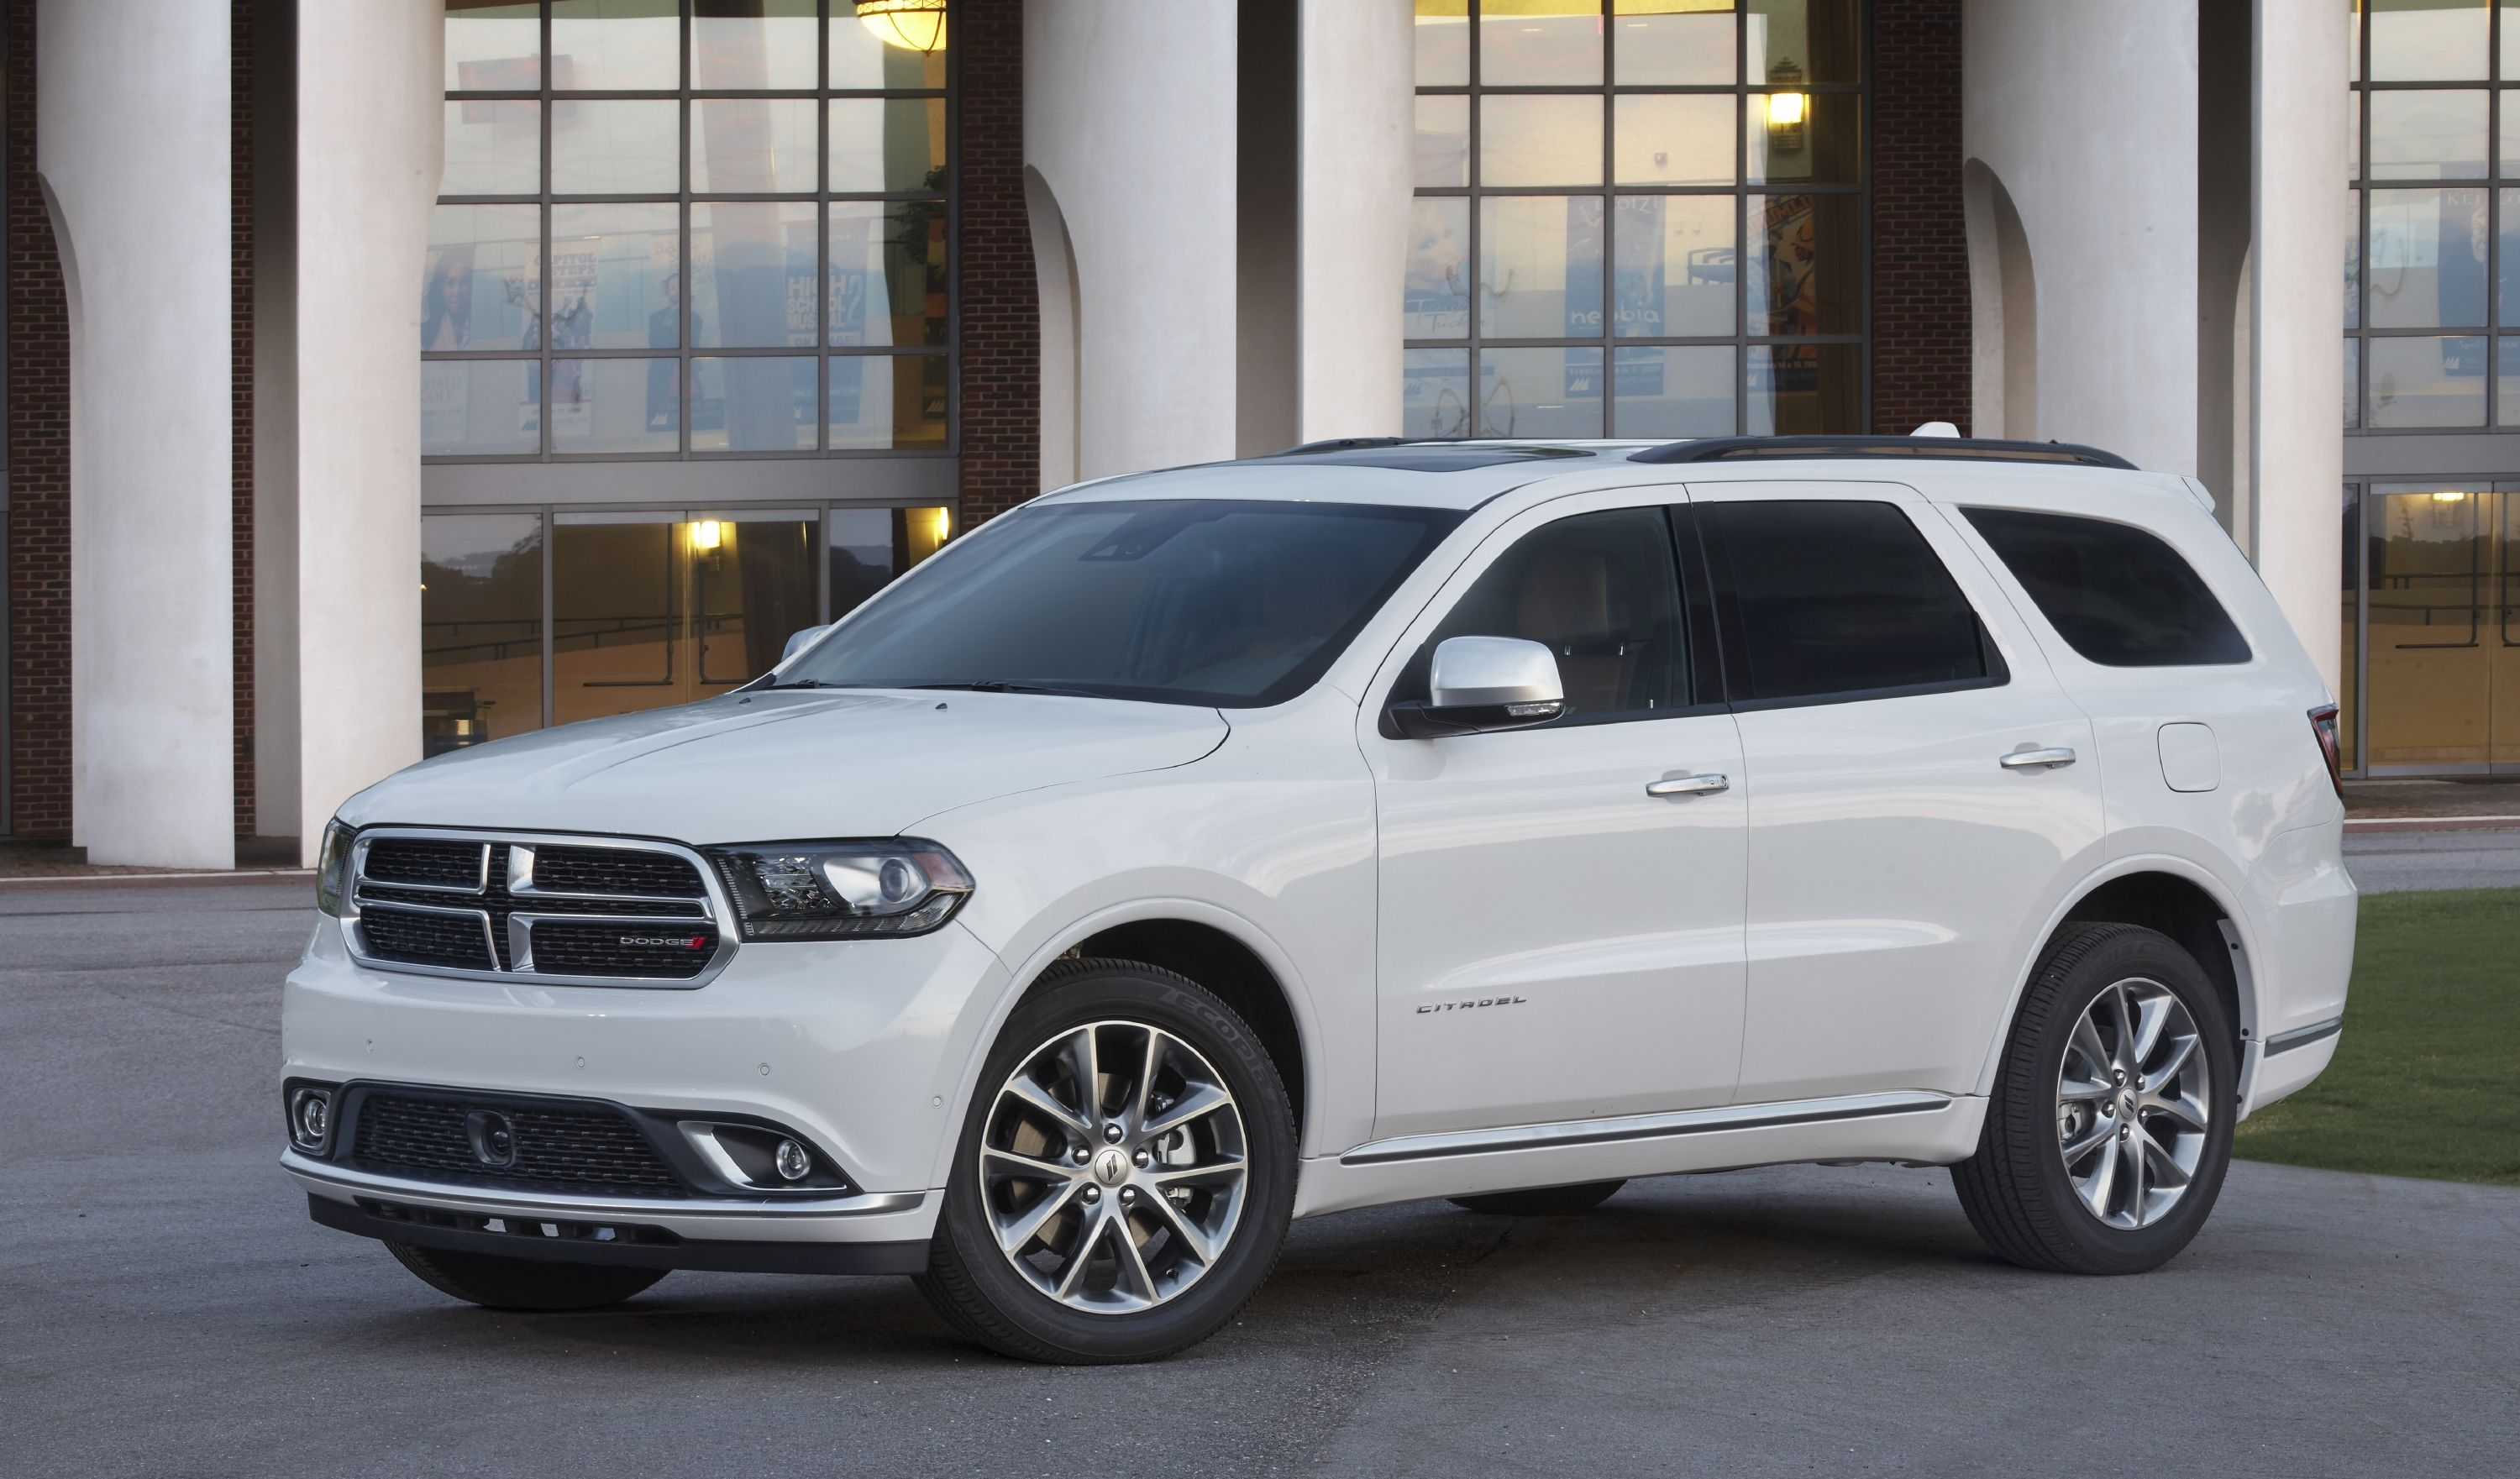 2020 Dodge Durango Review Pricing And Specs